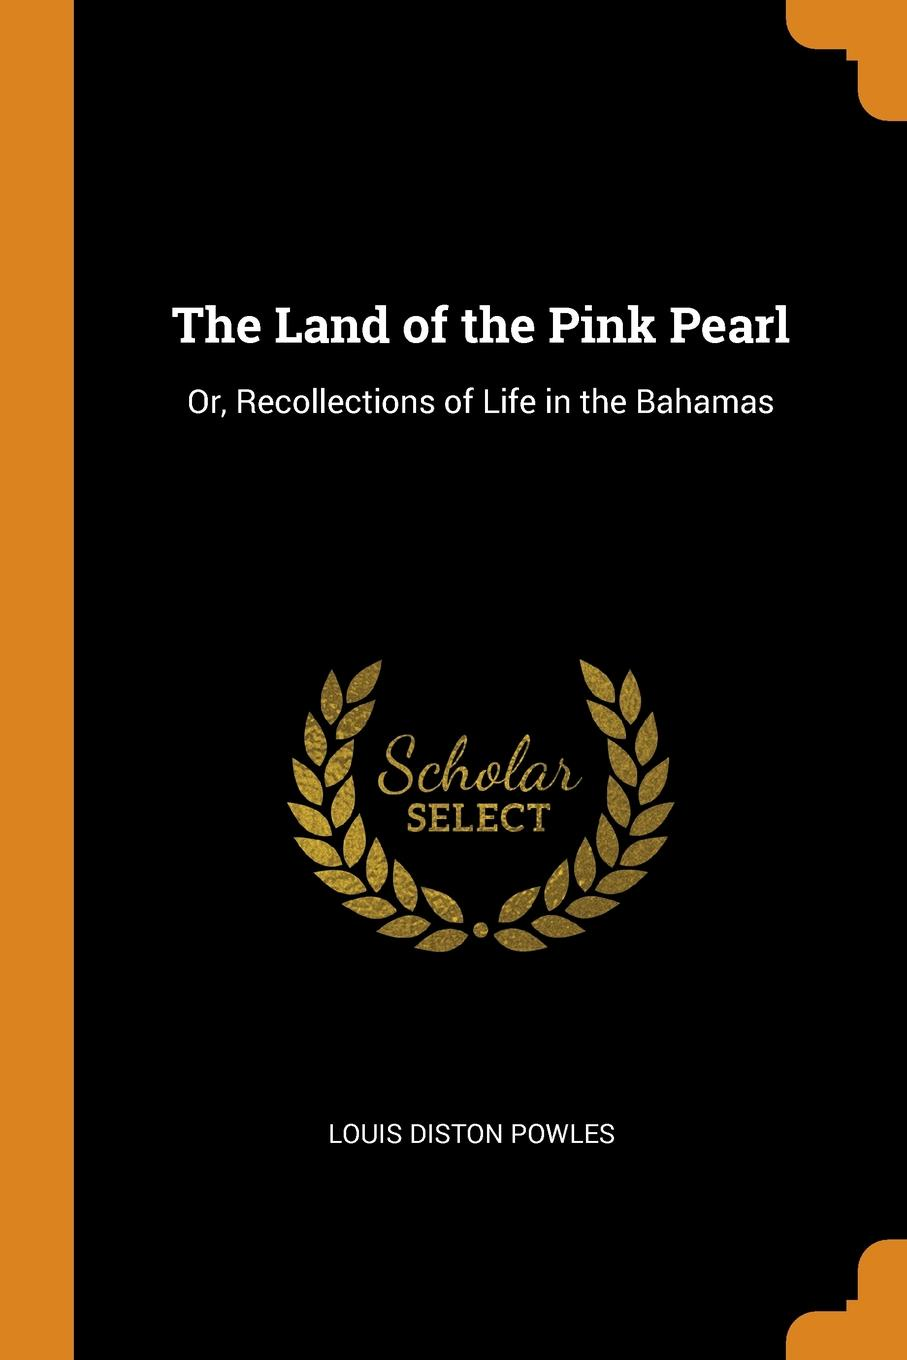 Louis Diston Powles The Land of the Pink Pearl. Or, Recollections of Life in the Bahamas